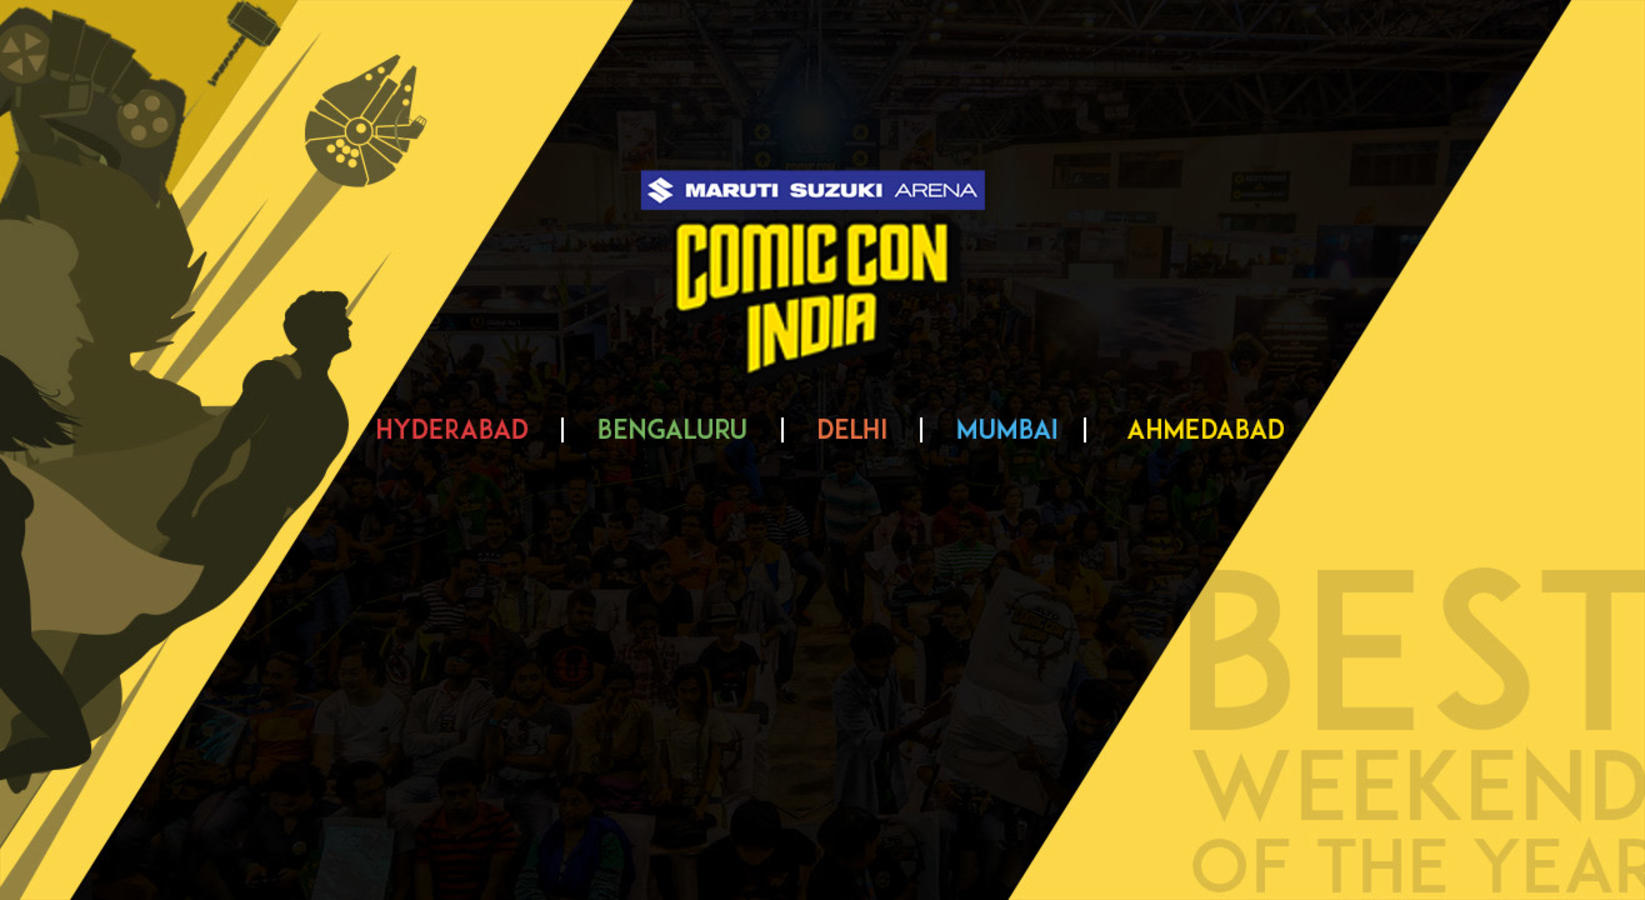 Comic Con India 2019: Hyderabad, Bengaluru, Mumbai, Delhi, Ahmedabad!